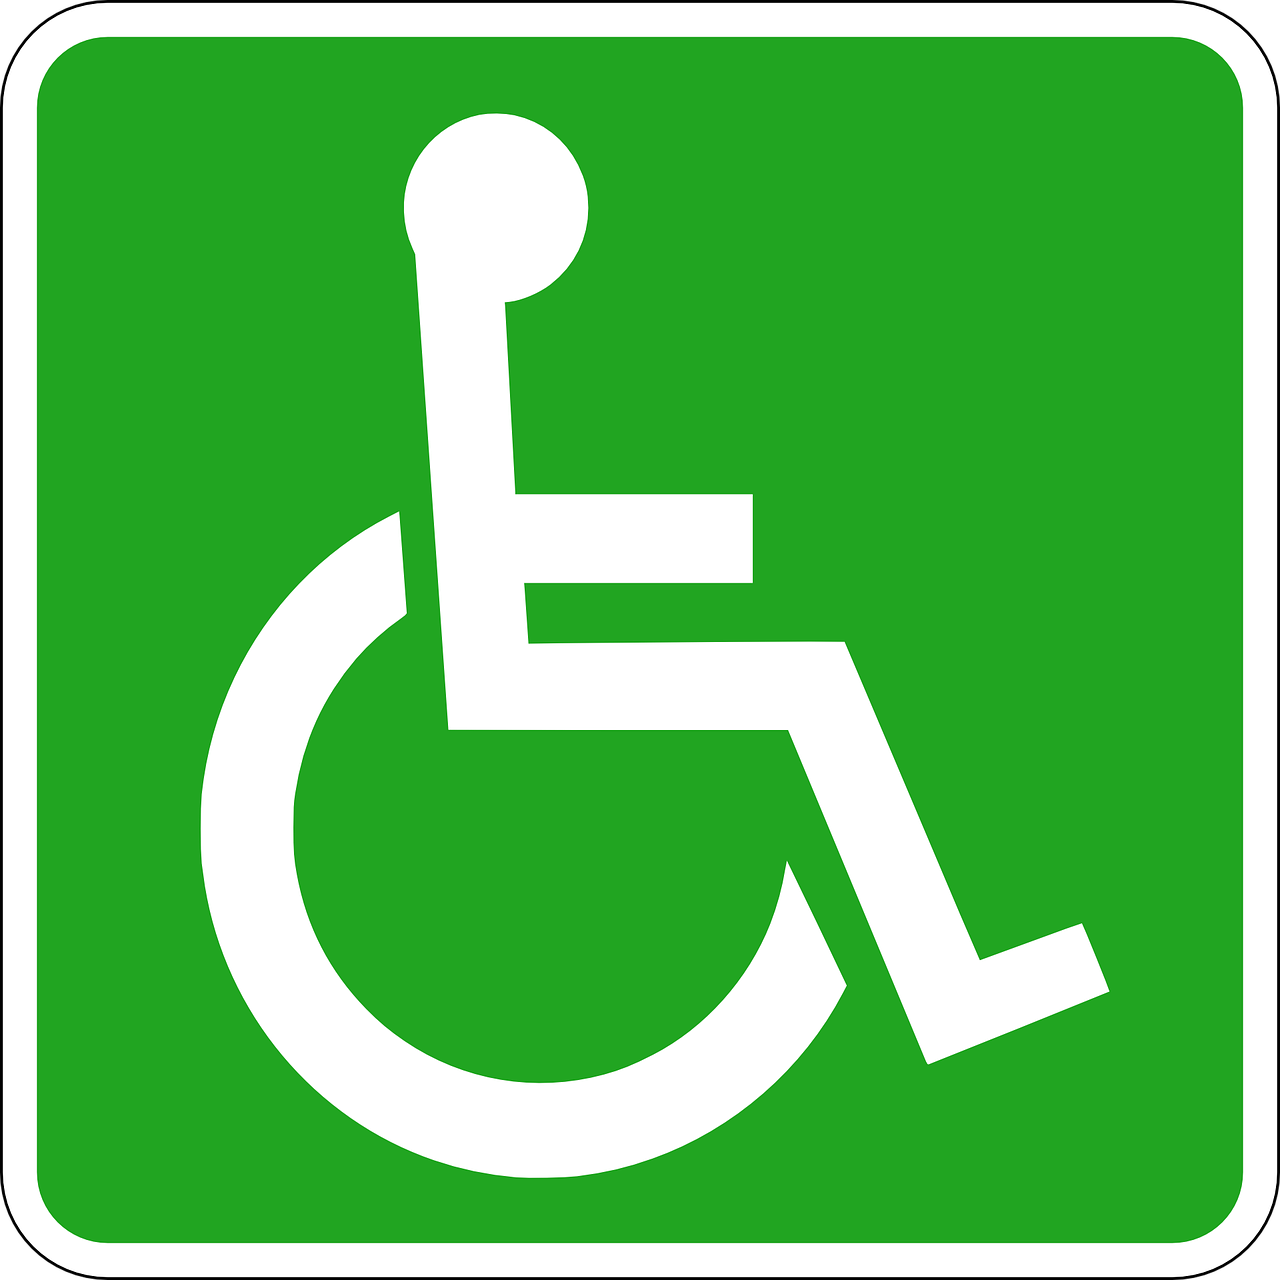 Green Handicap Symbol